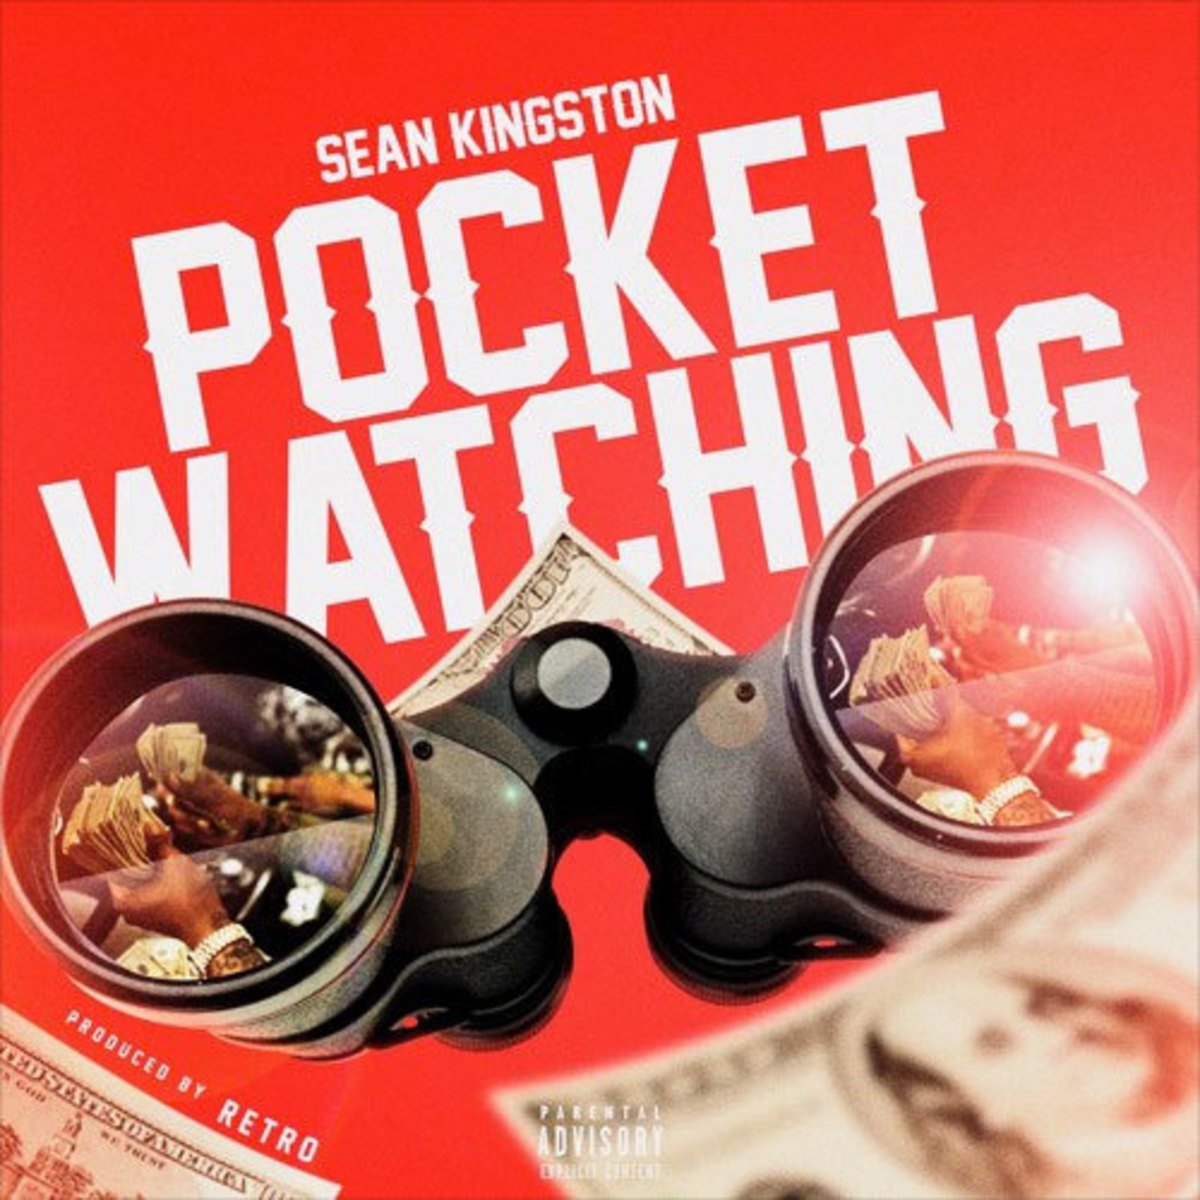 sean-kingston-pocket-watching.jpg